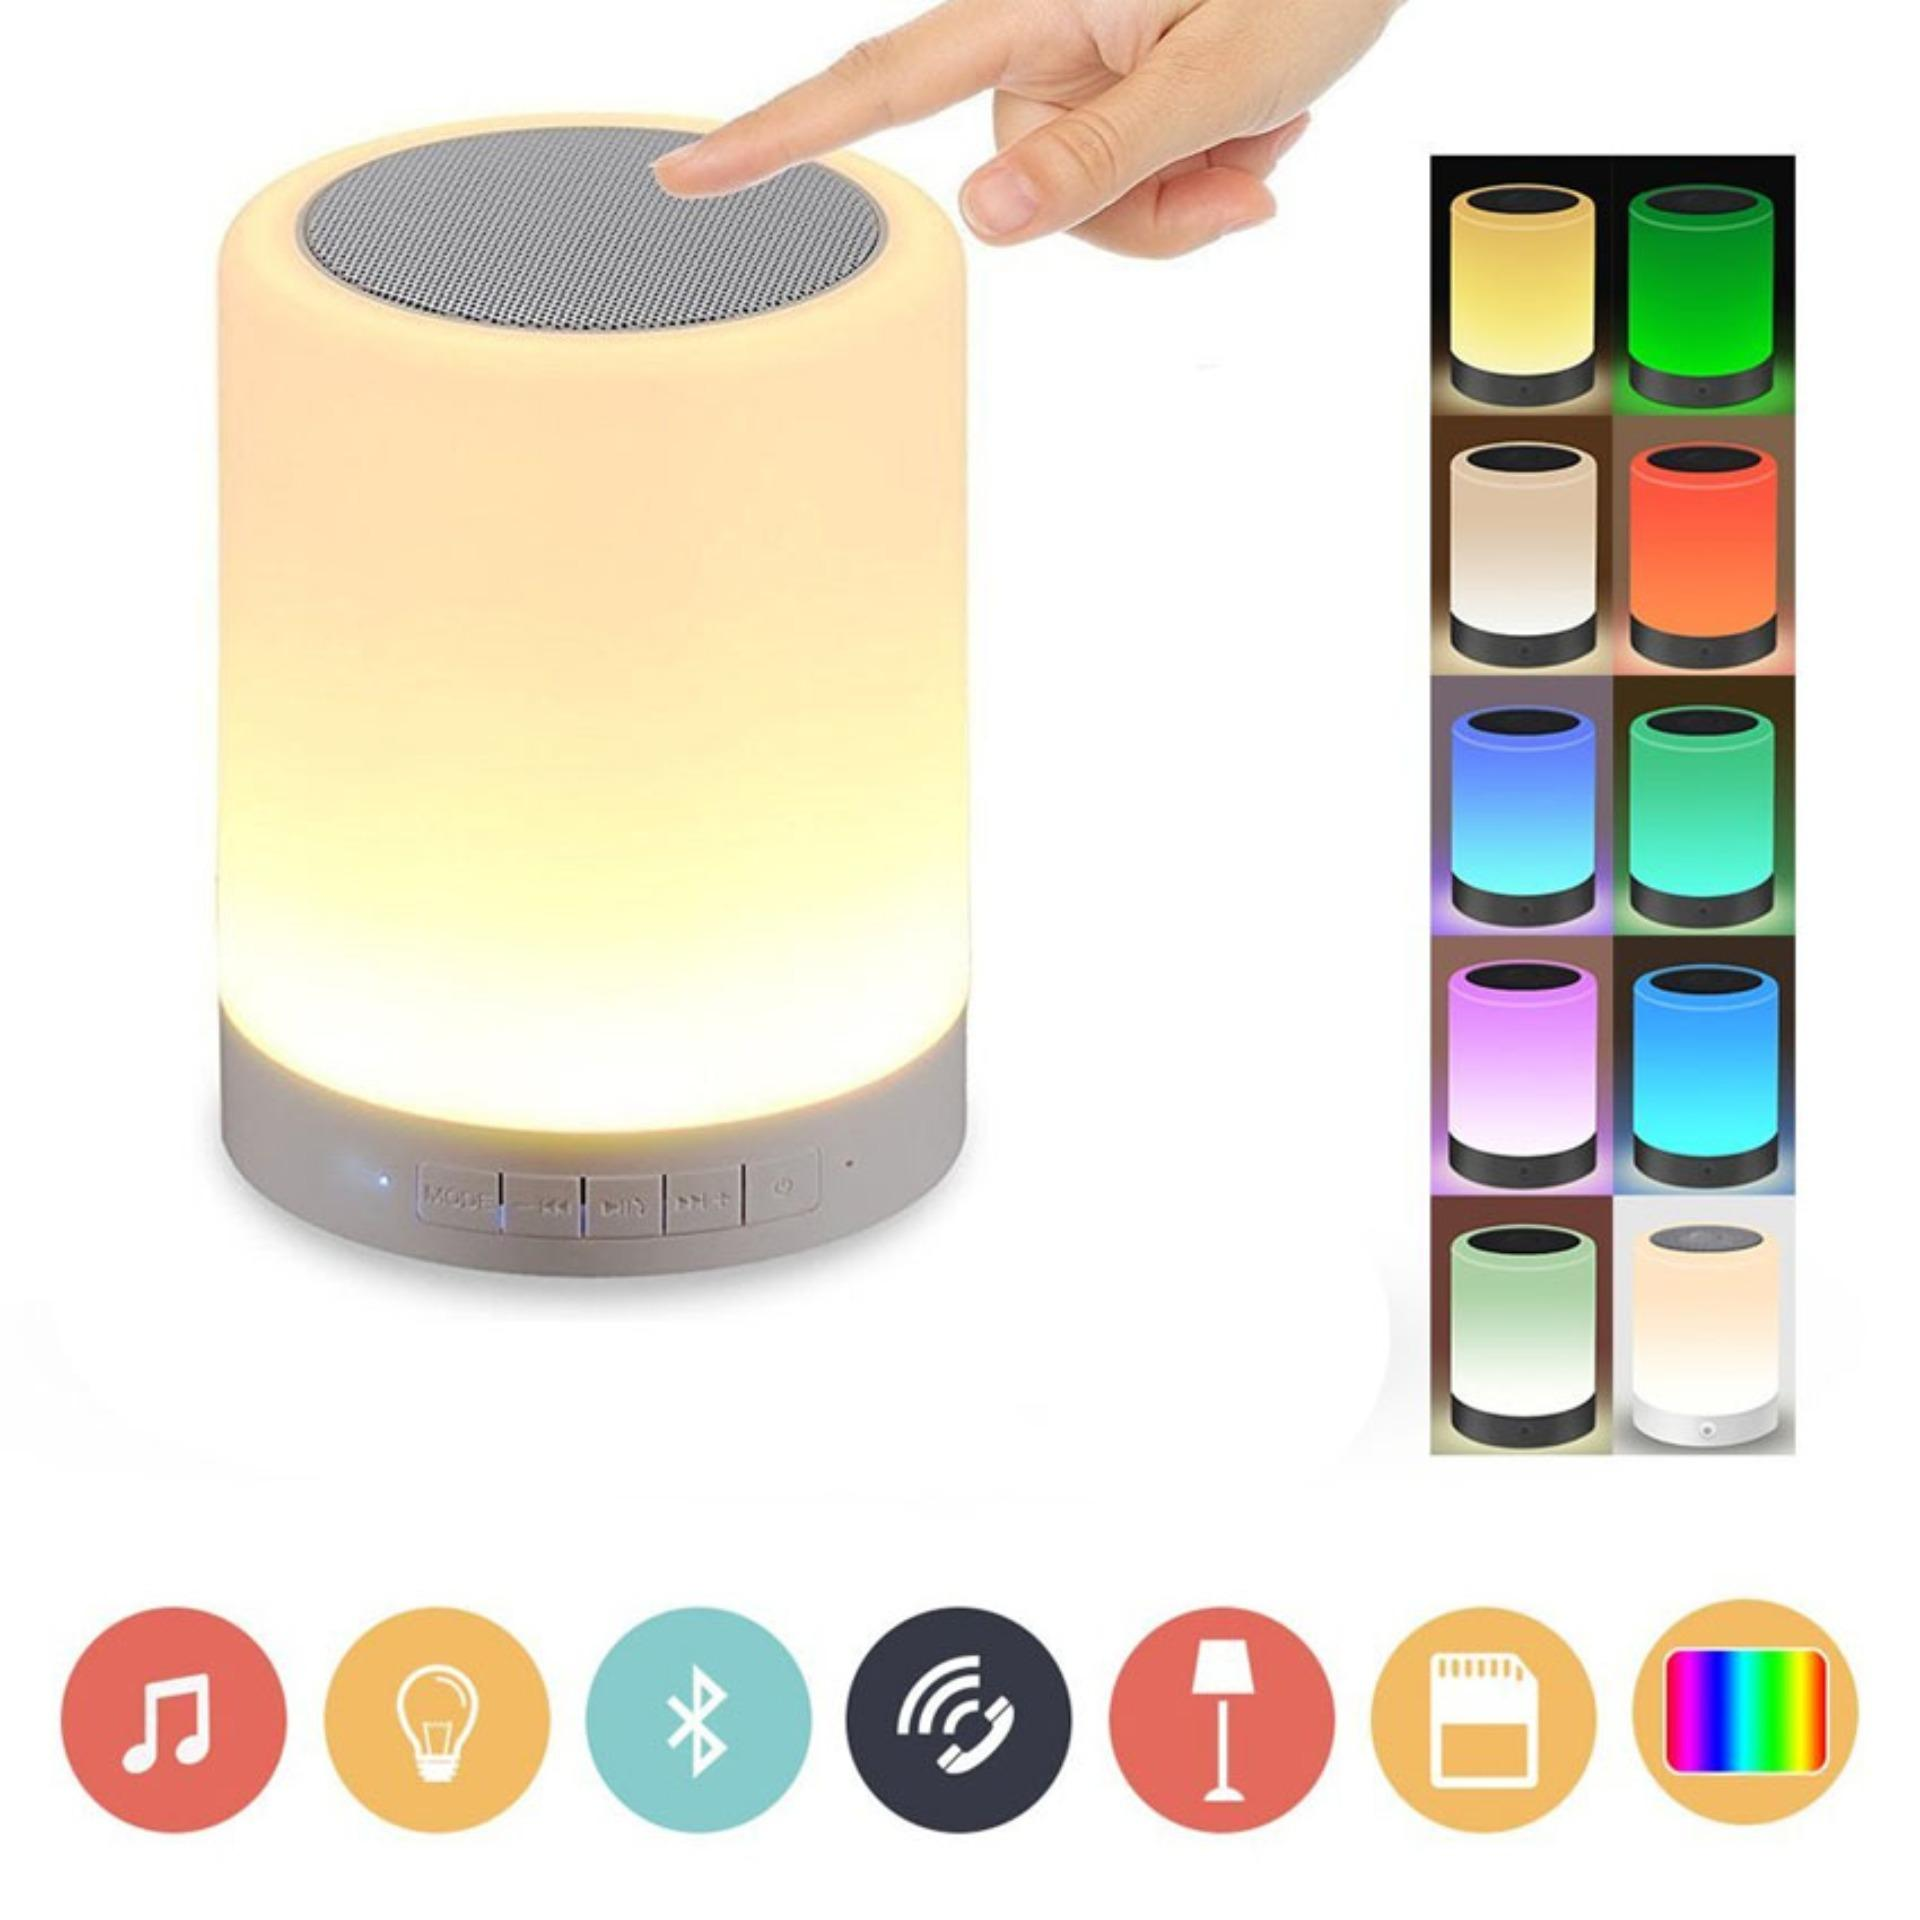 Speaker For Sale Bluetooth Prices Brands Specs In Xiaomi Mi Pportable Mini 16w Warm White Light Of Led Touch Lamp